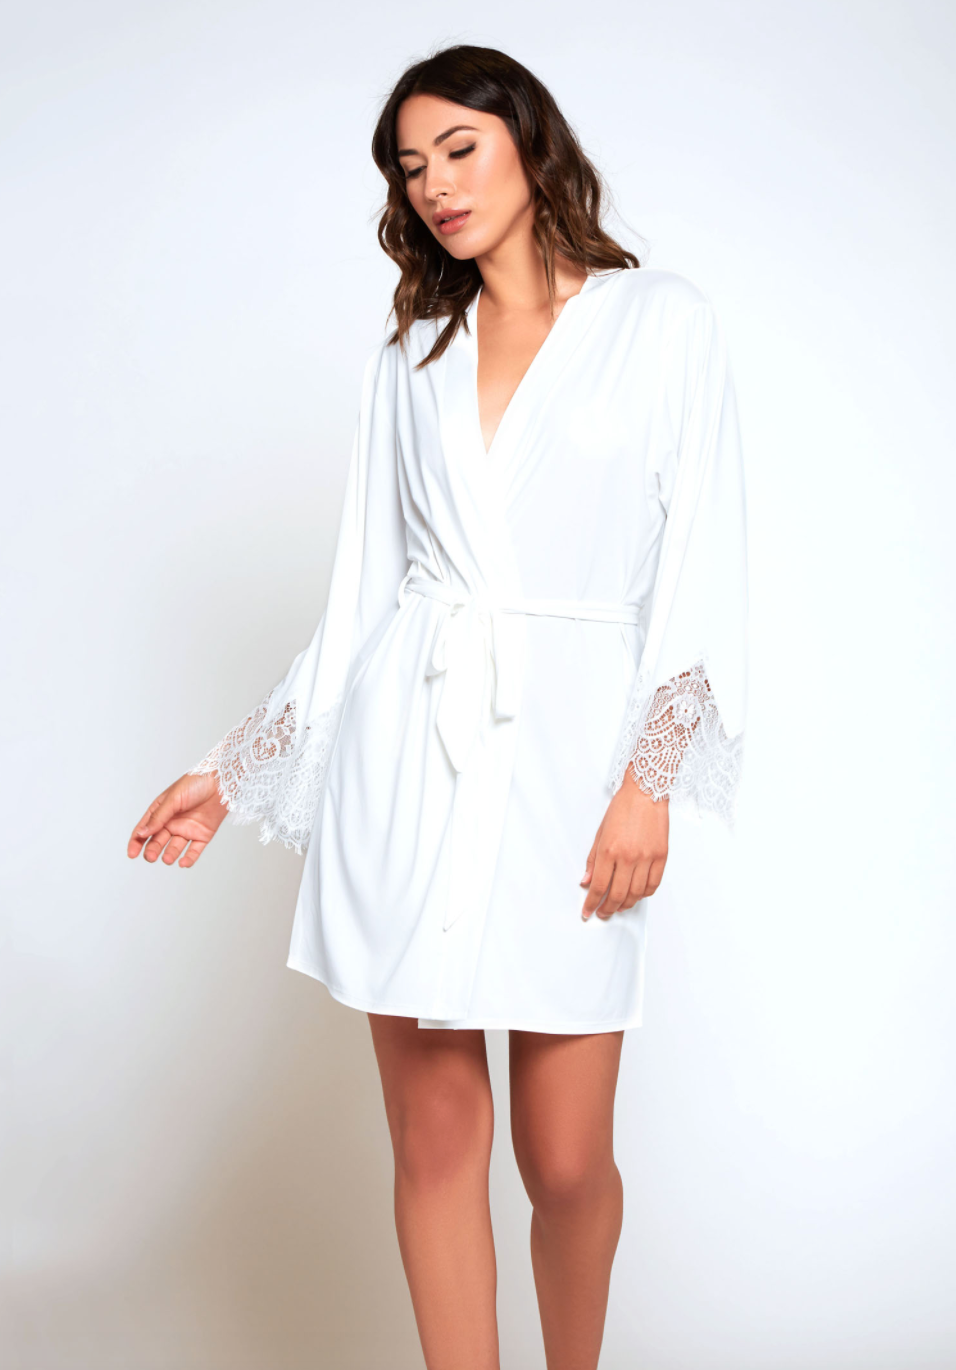 Soft lycra stretch robe with triangle lace detail and removable waist tie.